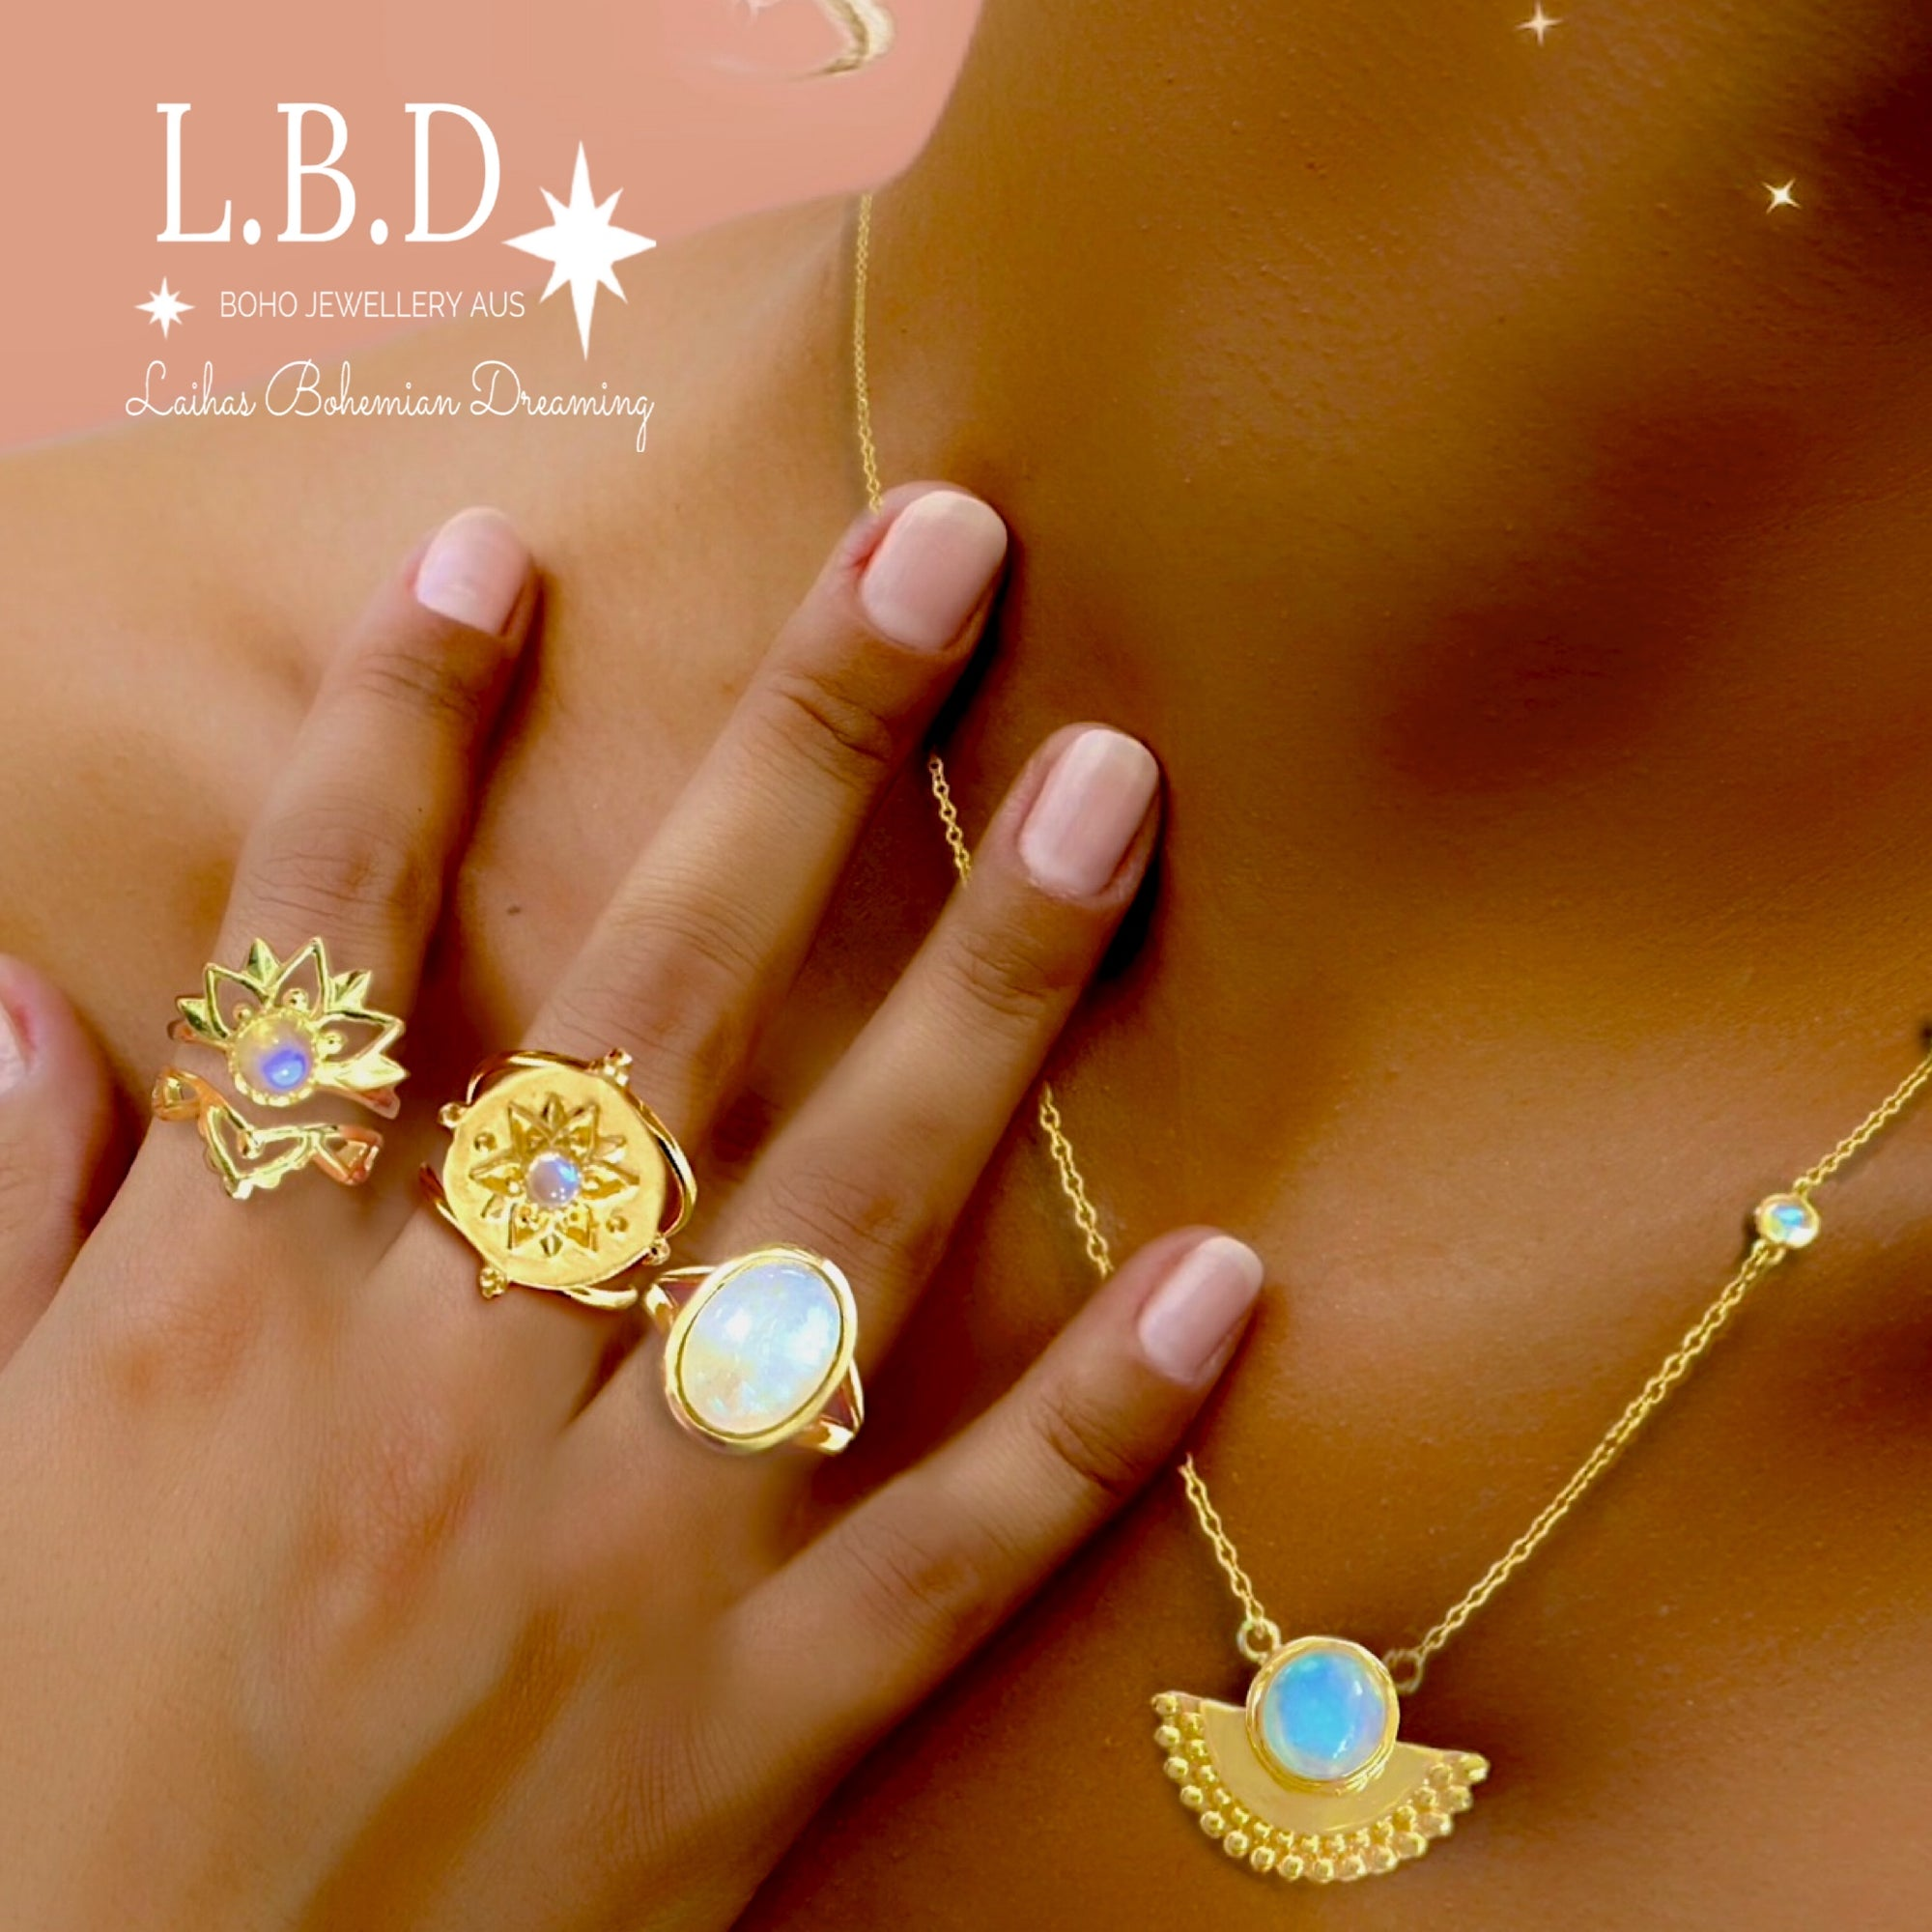 GOLD GEMSTONE JEWELLERY | Laihas Bohemian Dreaming